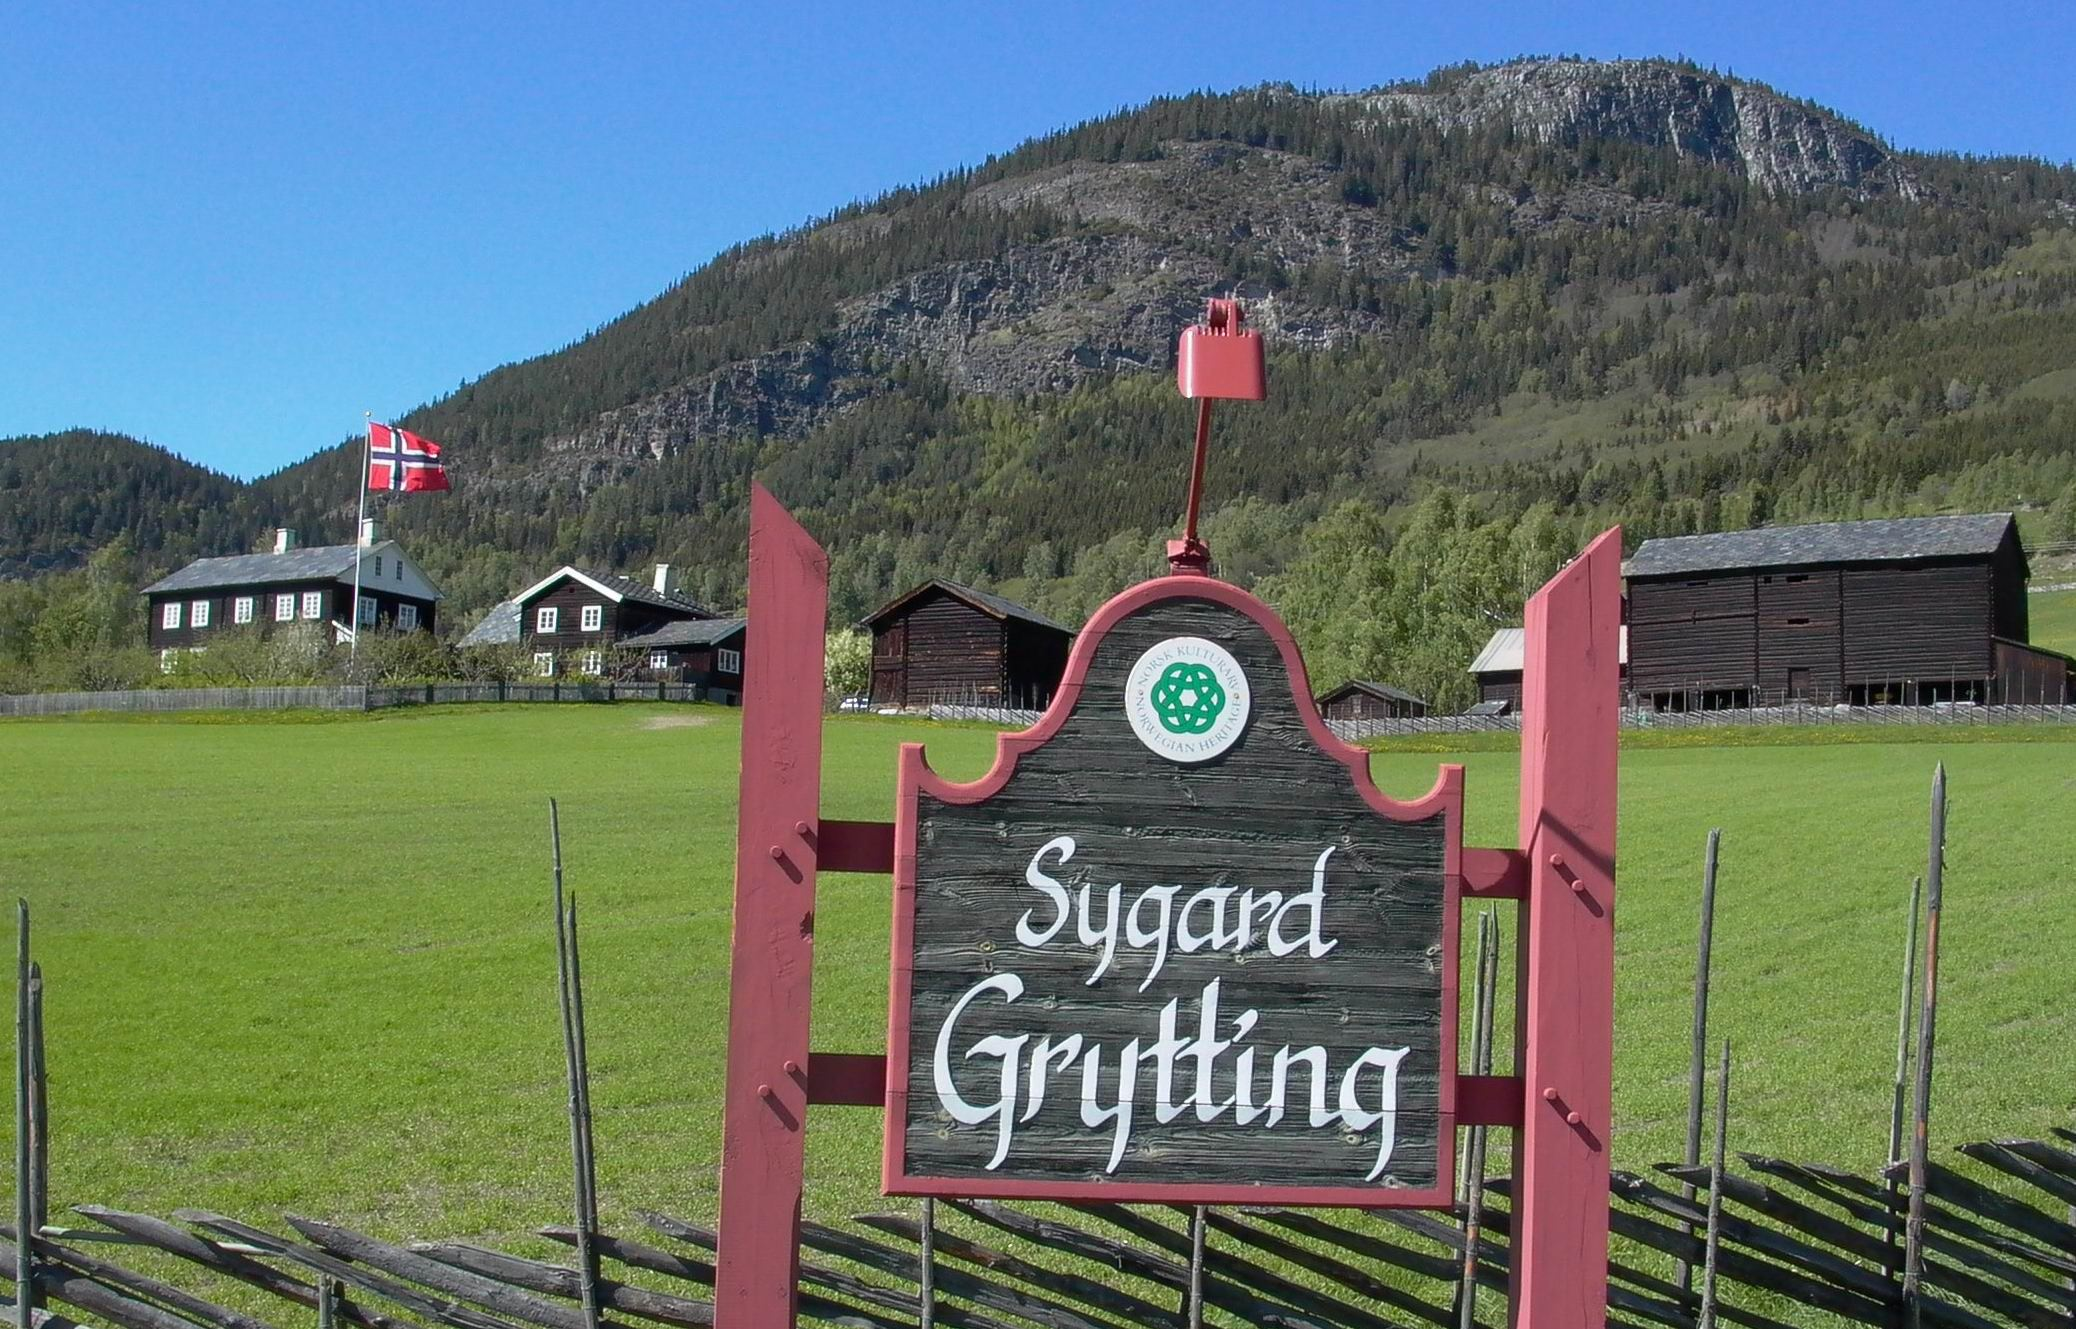 Sygard Grytting